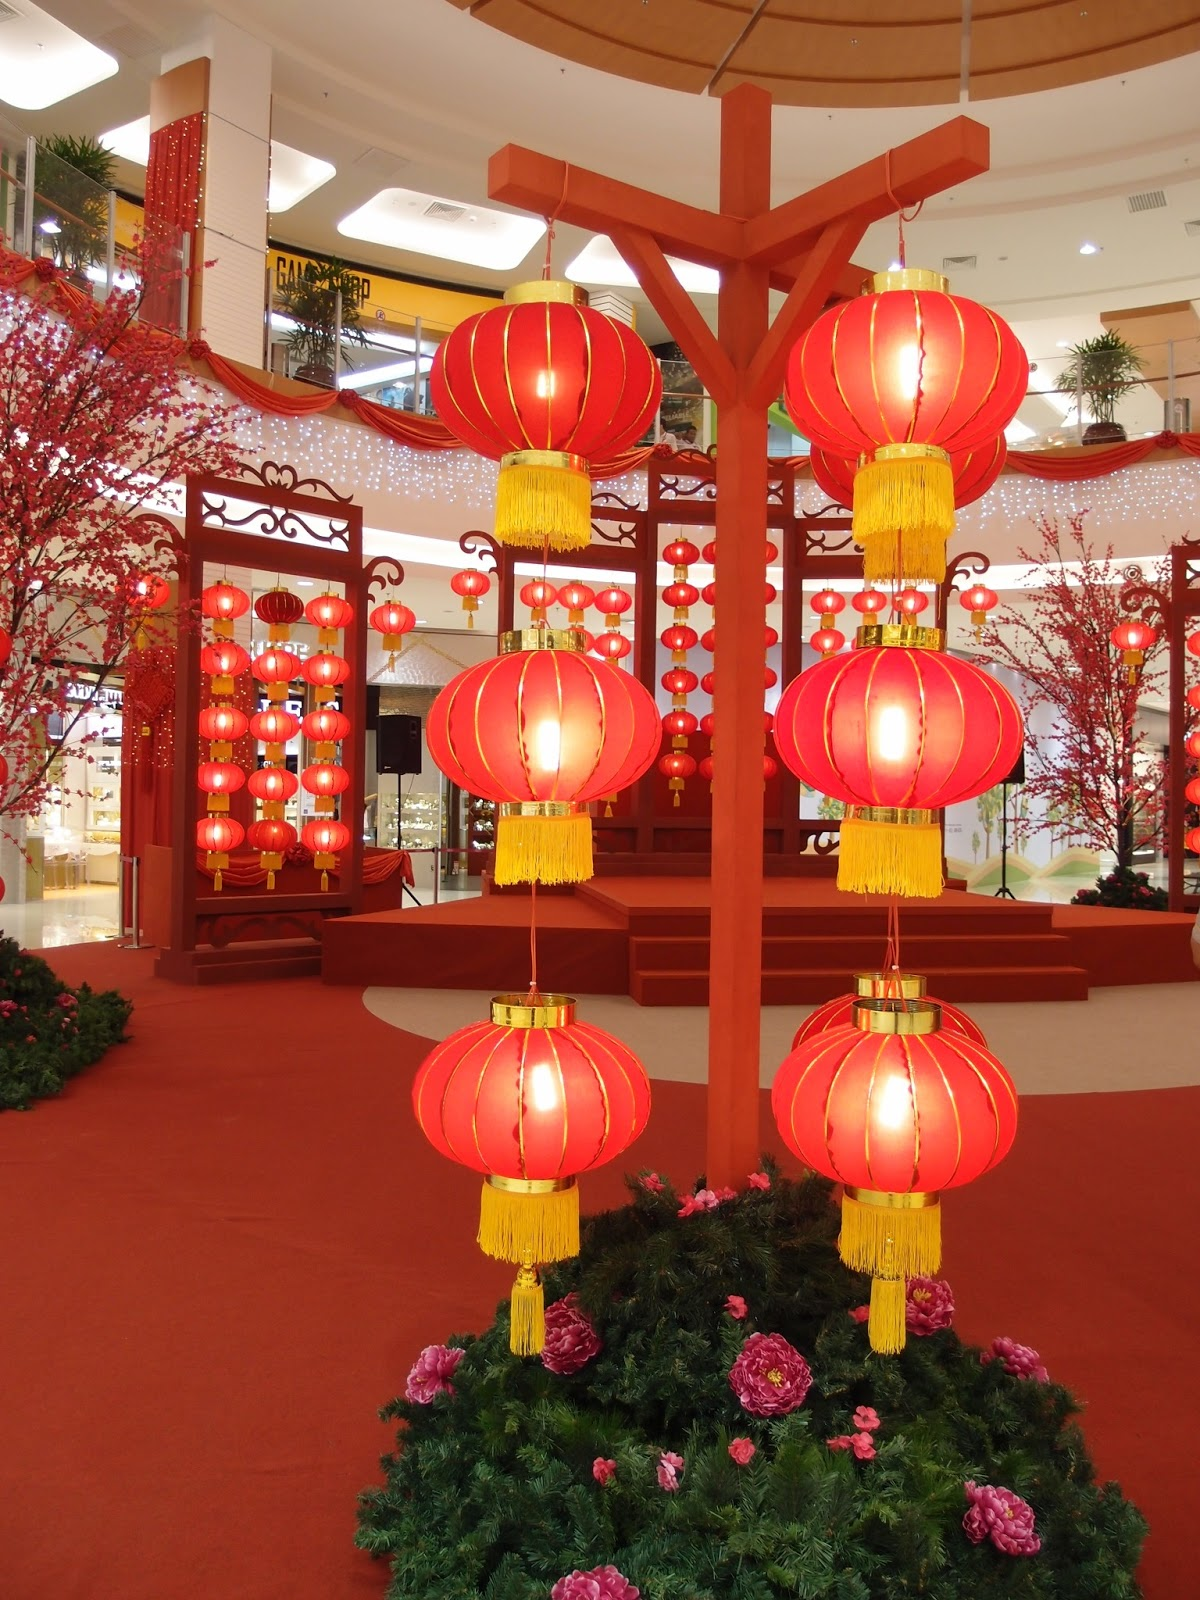 Xing Fu: CHINESE NEW YEAR DECORATIONS AT AEON SITIAWAN